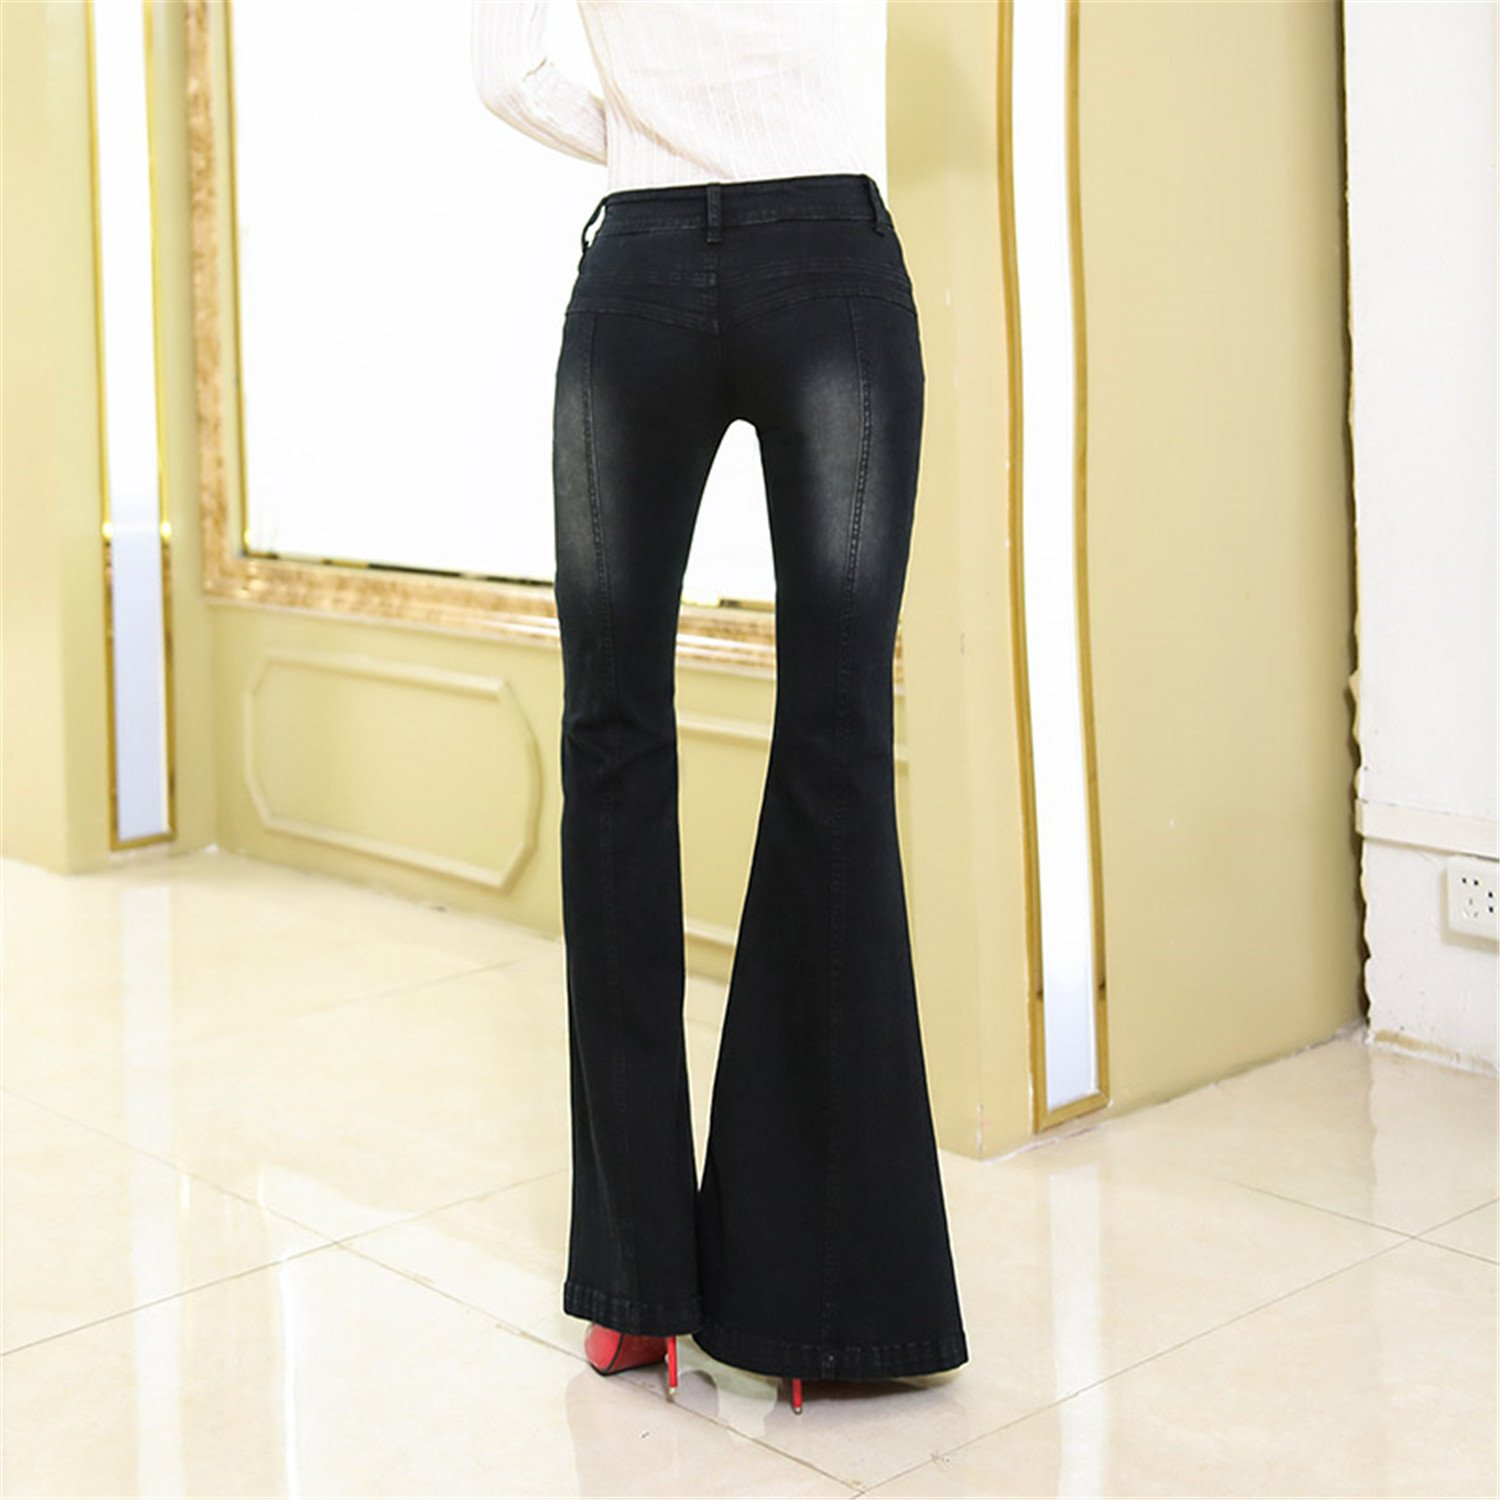 Vilma Reynoso Stretch Elastic Black Flare Jeans Women Long Stretching Bell-Bottoms Jeans Plus Size